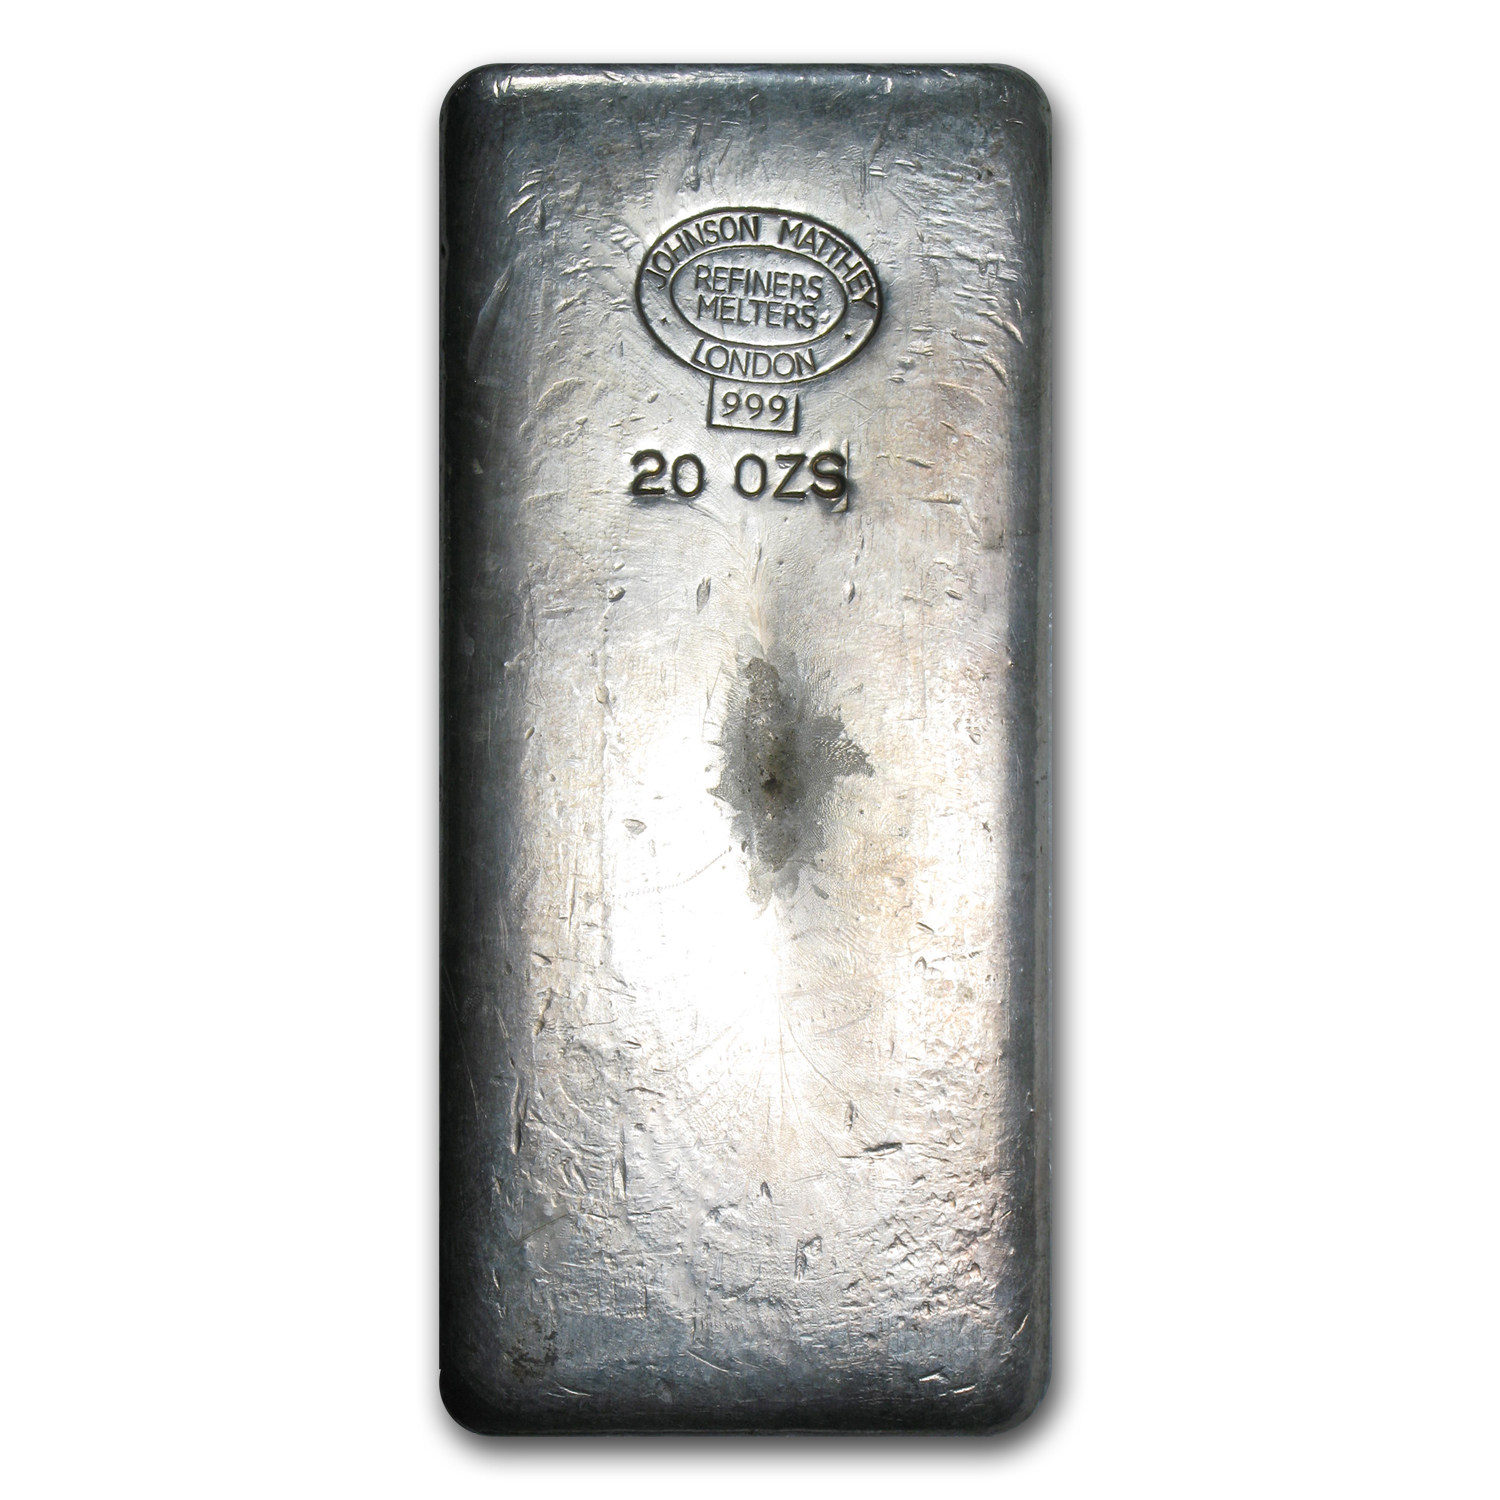 20 oz Silver Bar - Johnson Matthey (Vintage/London)